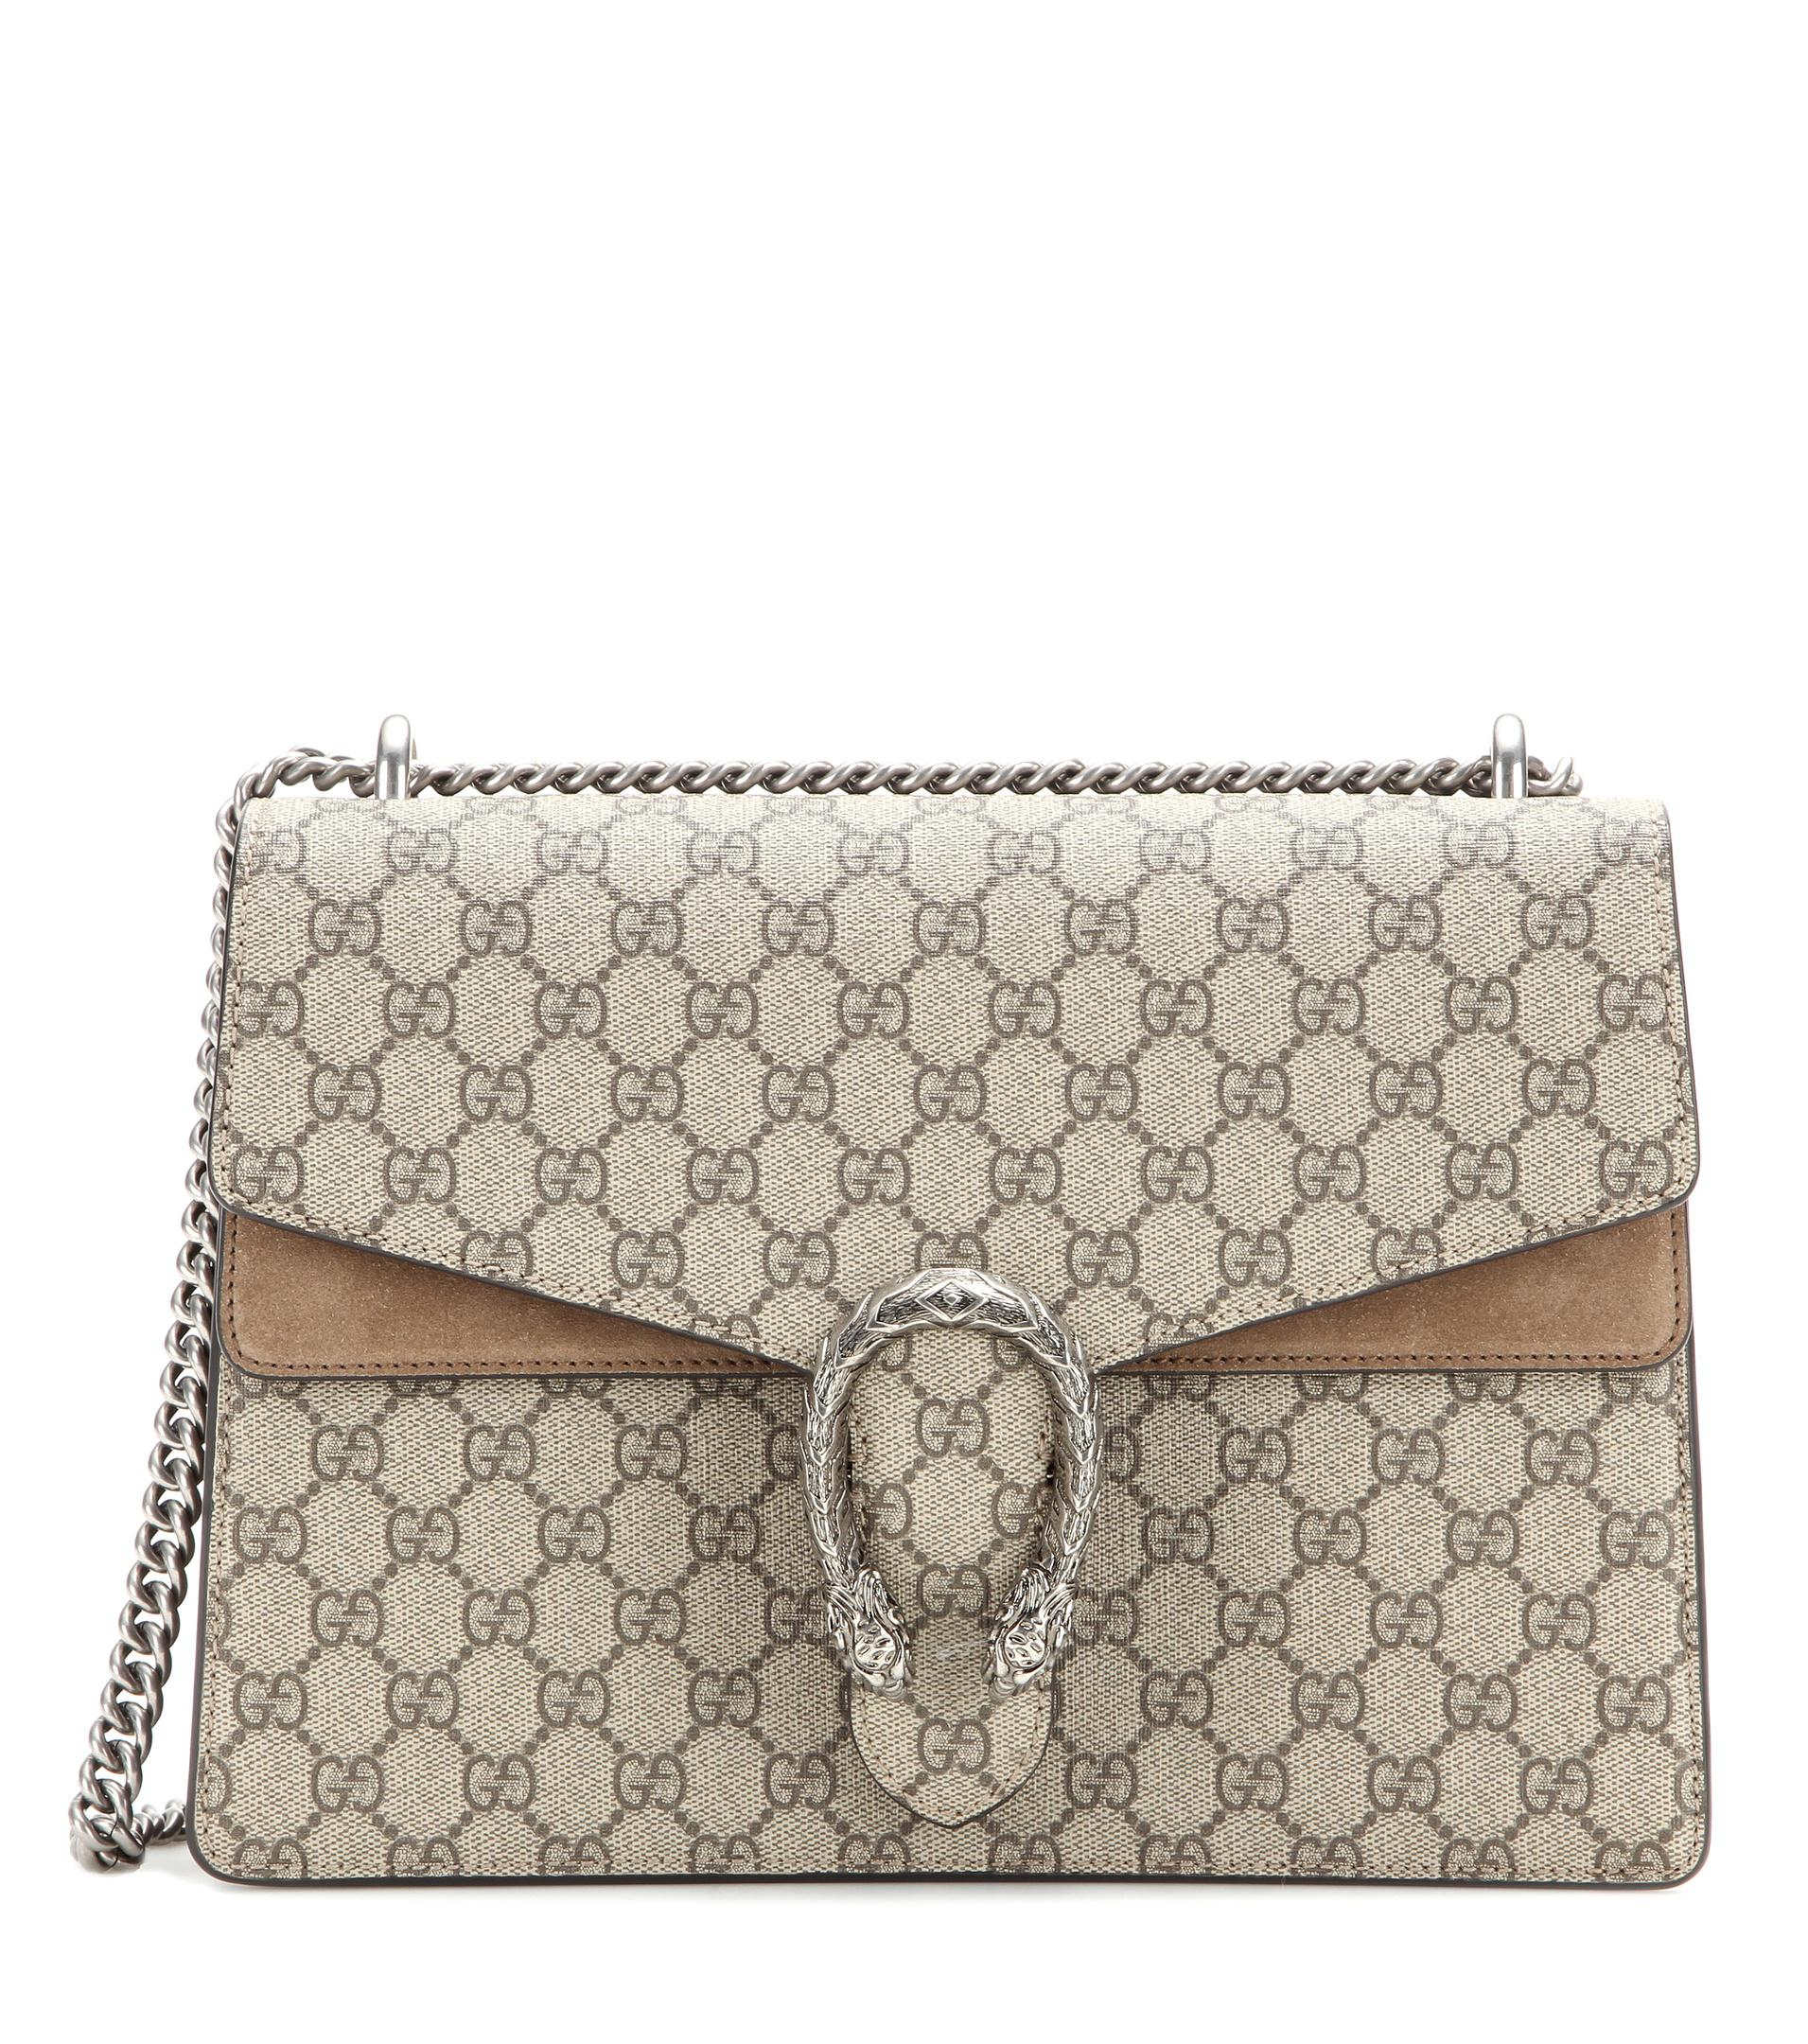 dd3278e68 Gucci Dionysus Gg Supreme Medium Coated Canvas And Suede Shoulder ...